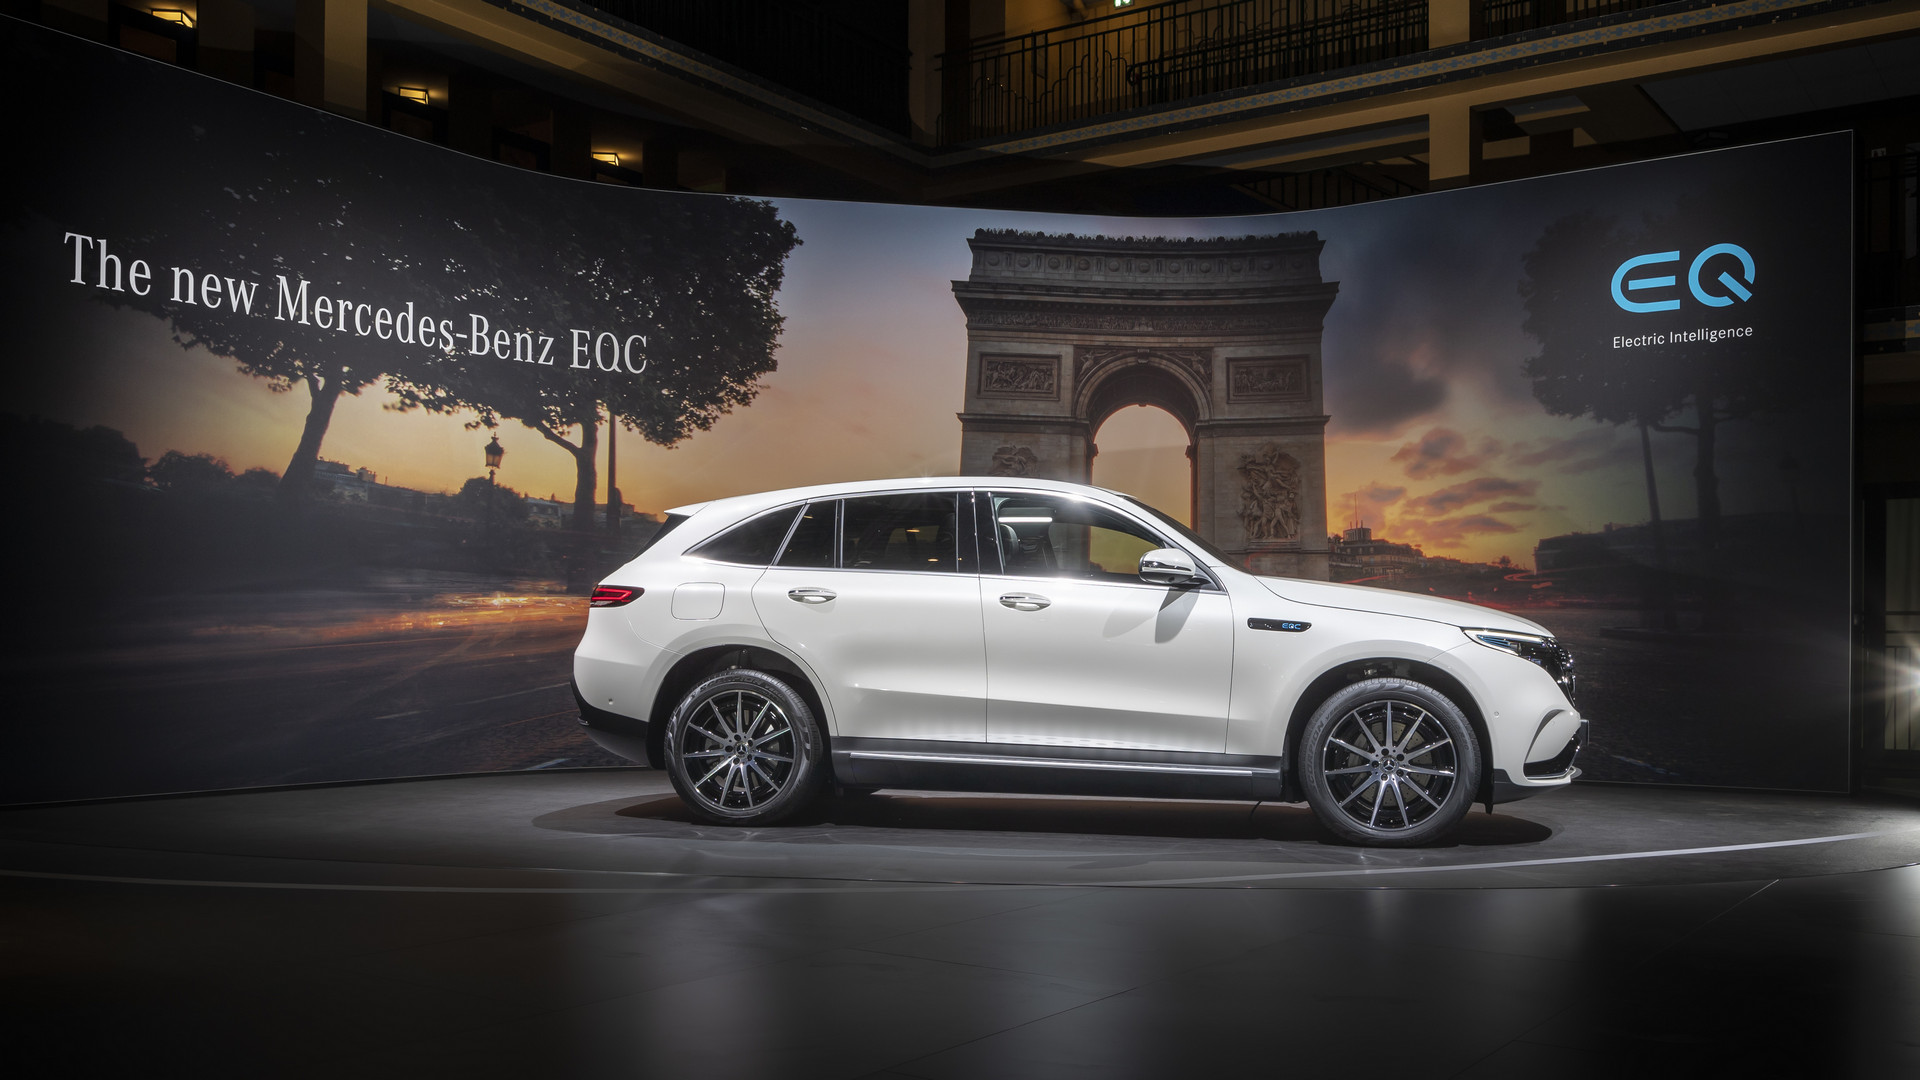 2019 Mercedes-Benz EQC Side View